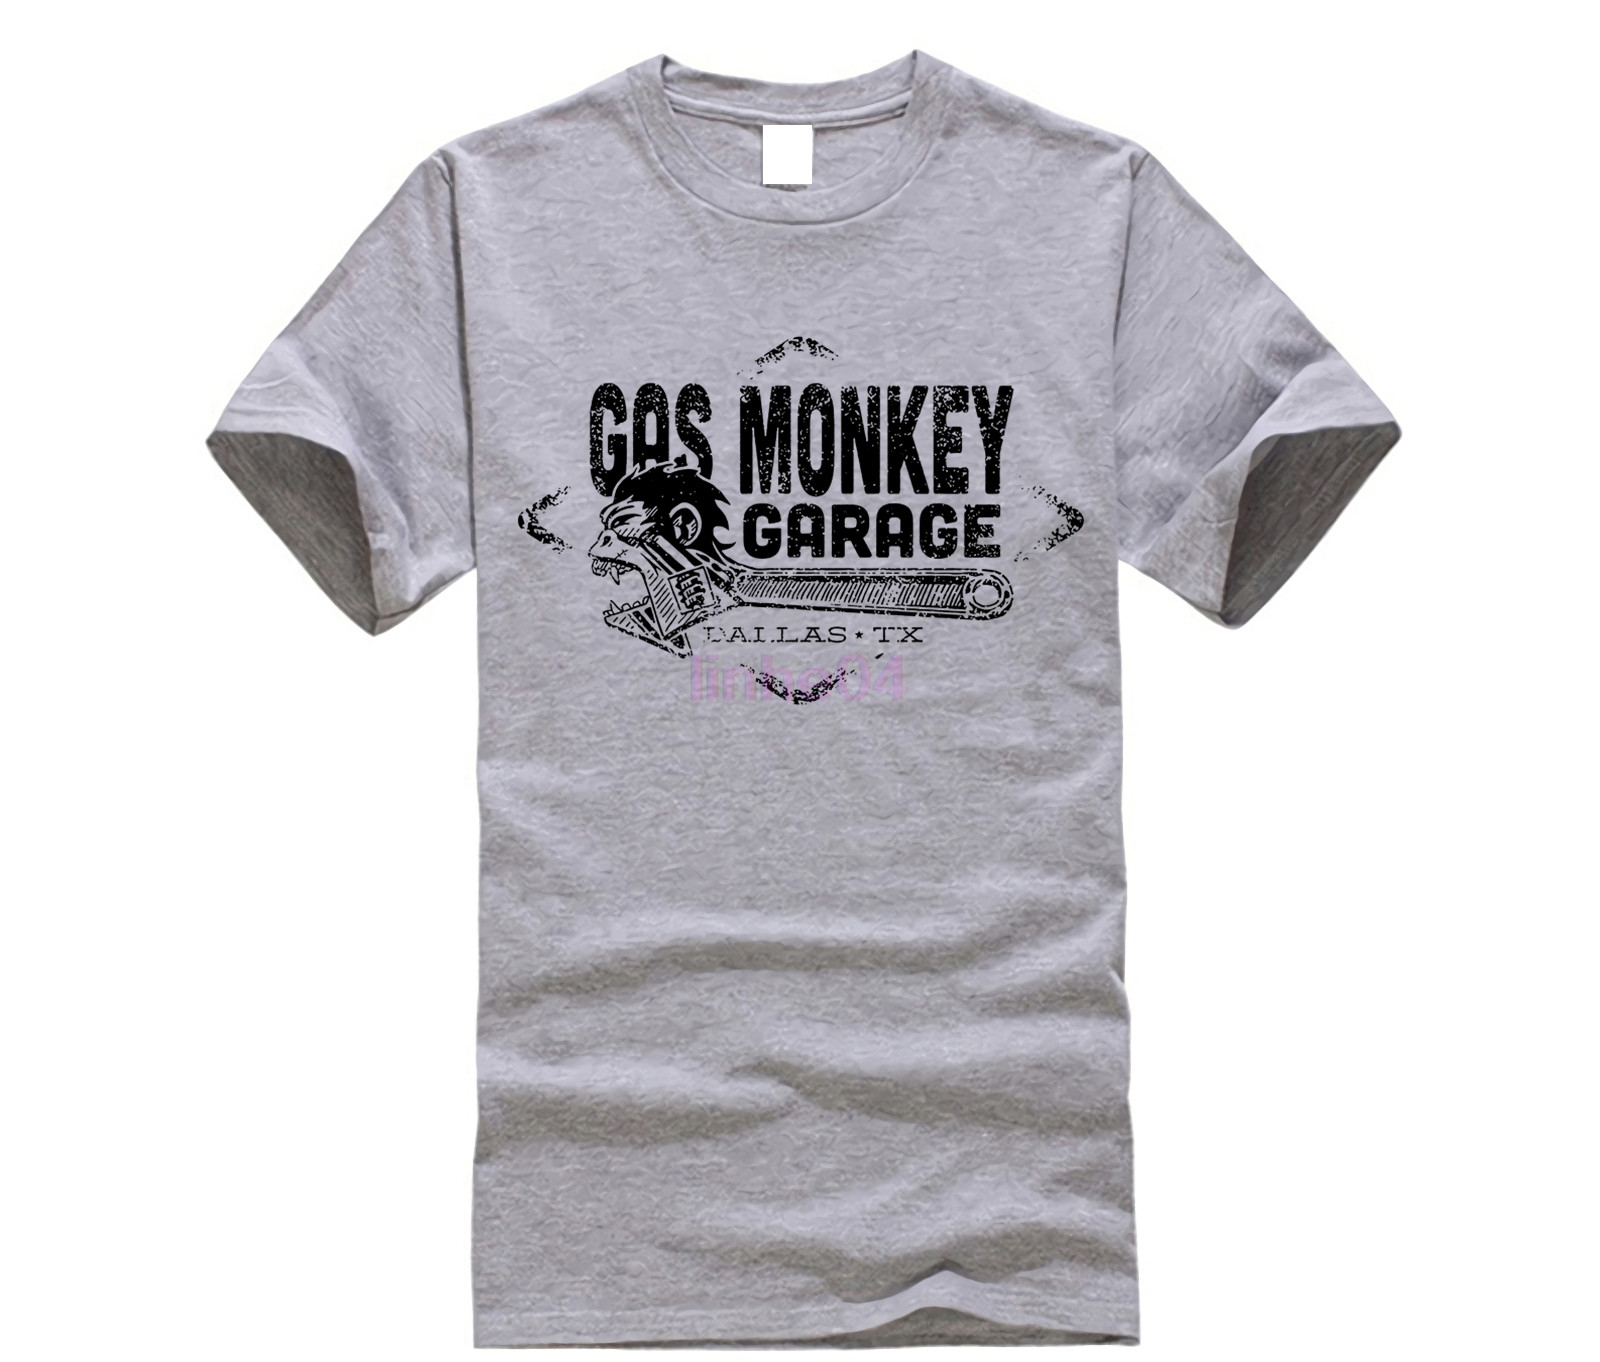 Men's Clothing Tops & Tees Hearty Gas Custom Hot Rods Monkey Garage Dallas Tee T-shirt Man Cotton Short Sleeve Tee T-shirt Big Clearance Sale